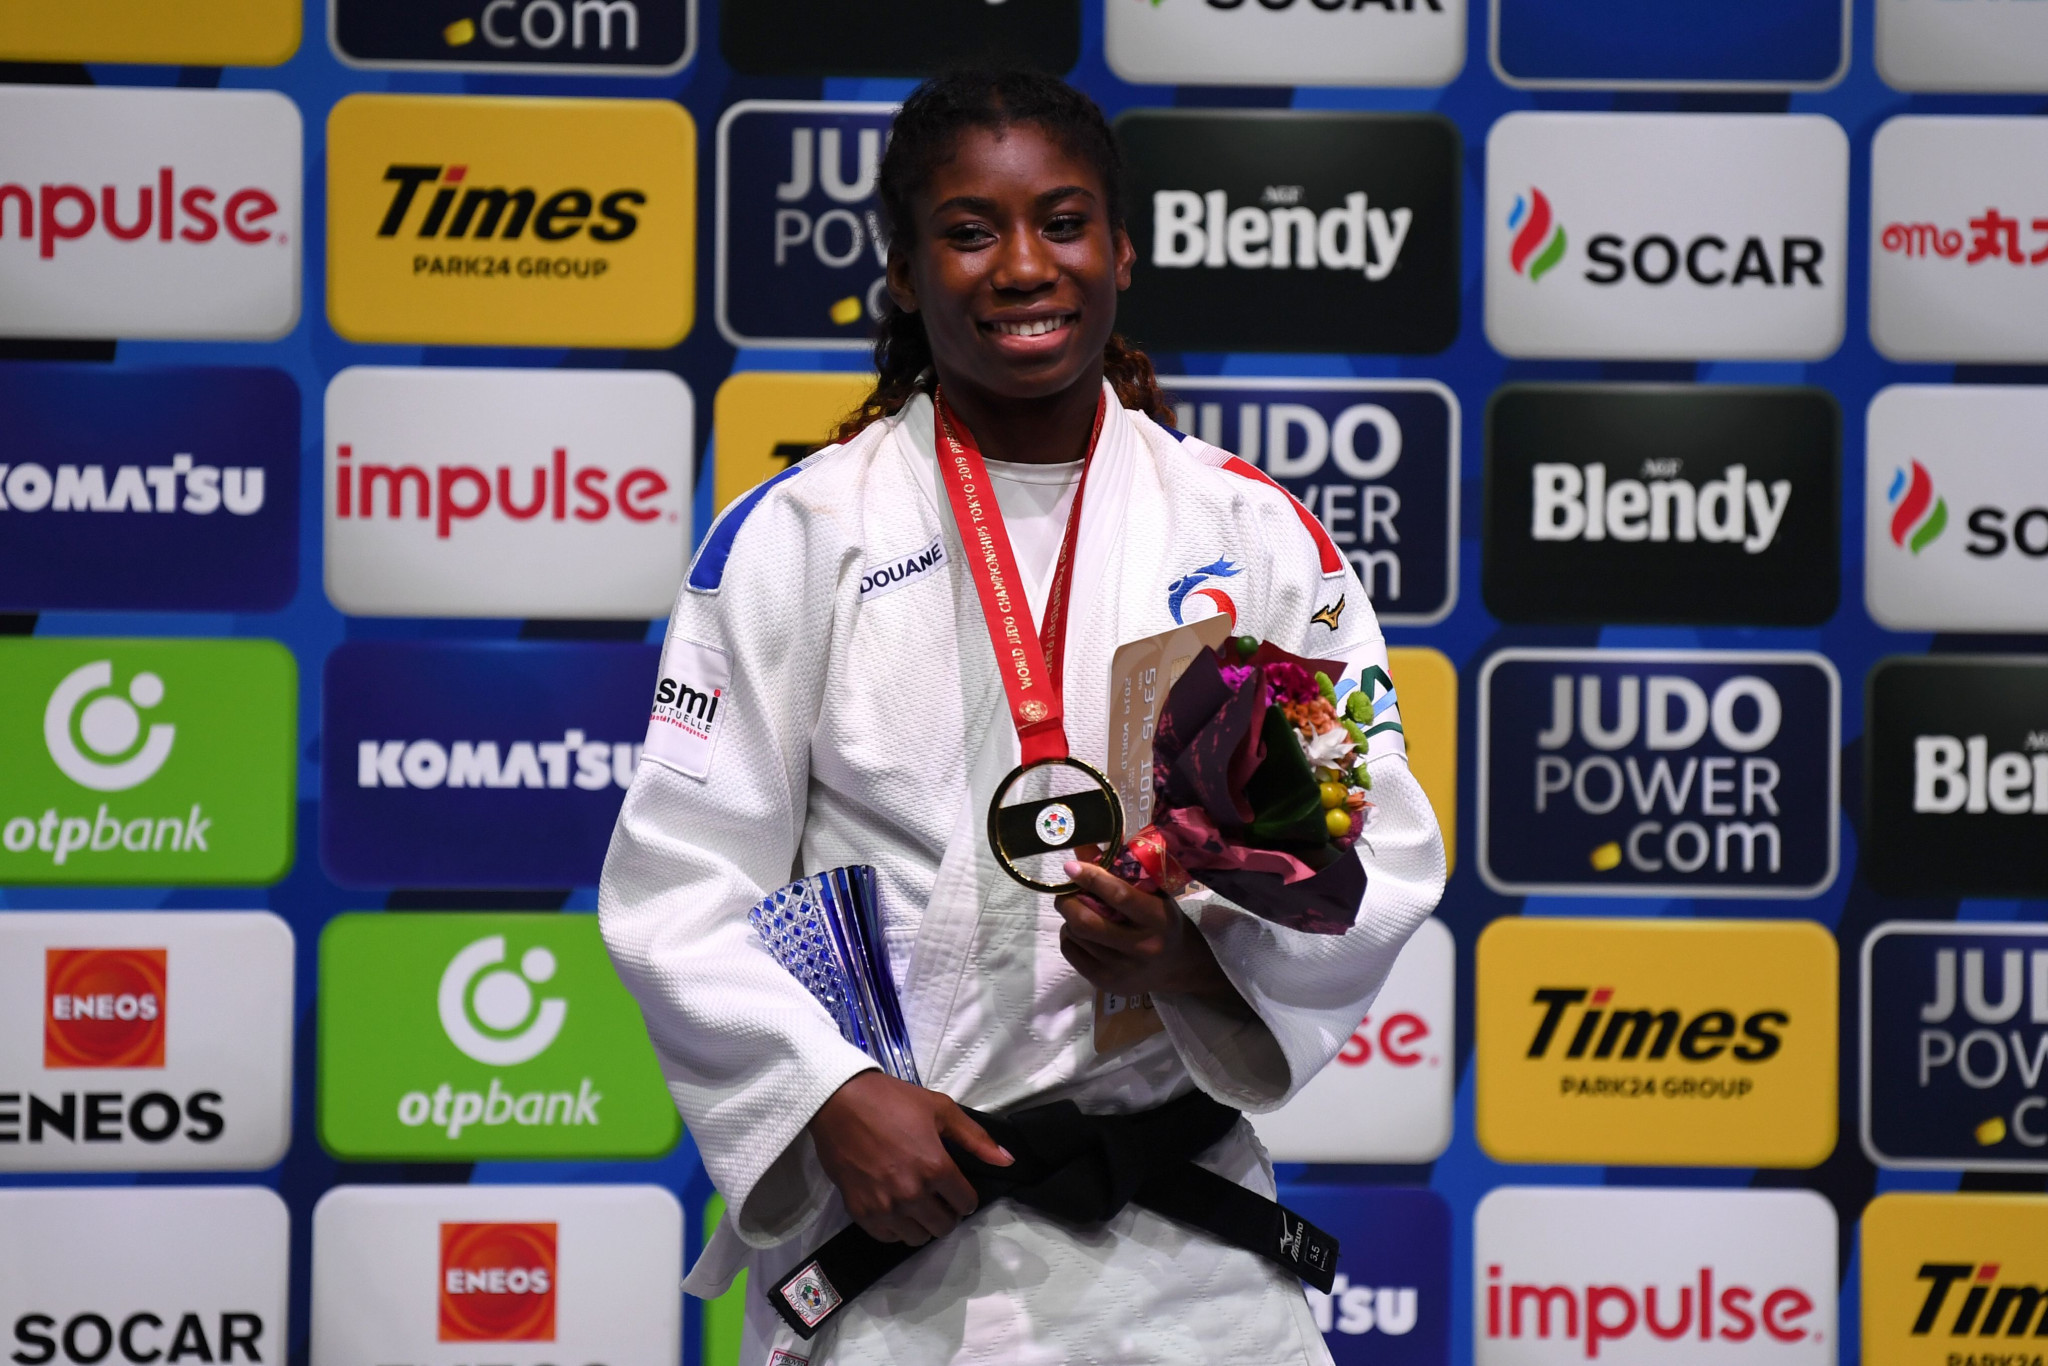 Gahié and van 't End triumph on day of upsets at IJF World Championships